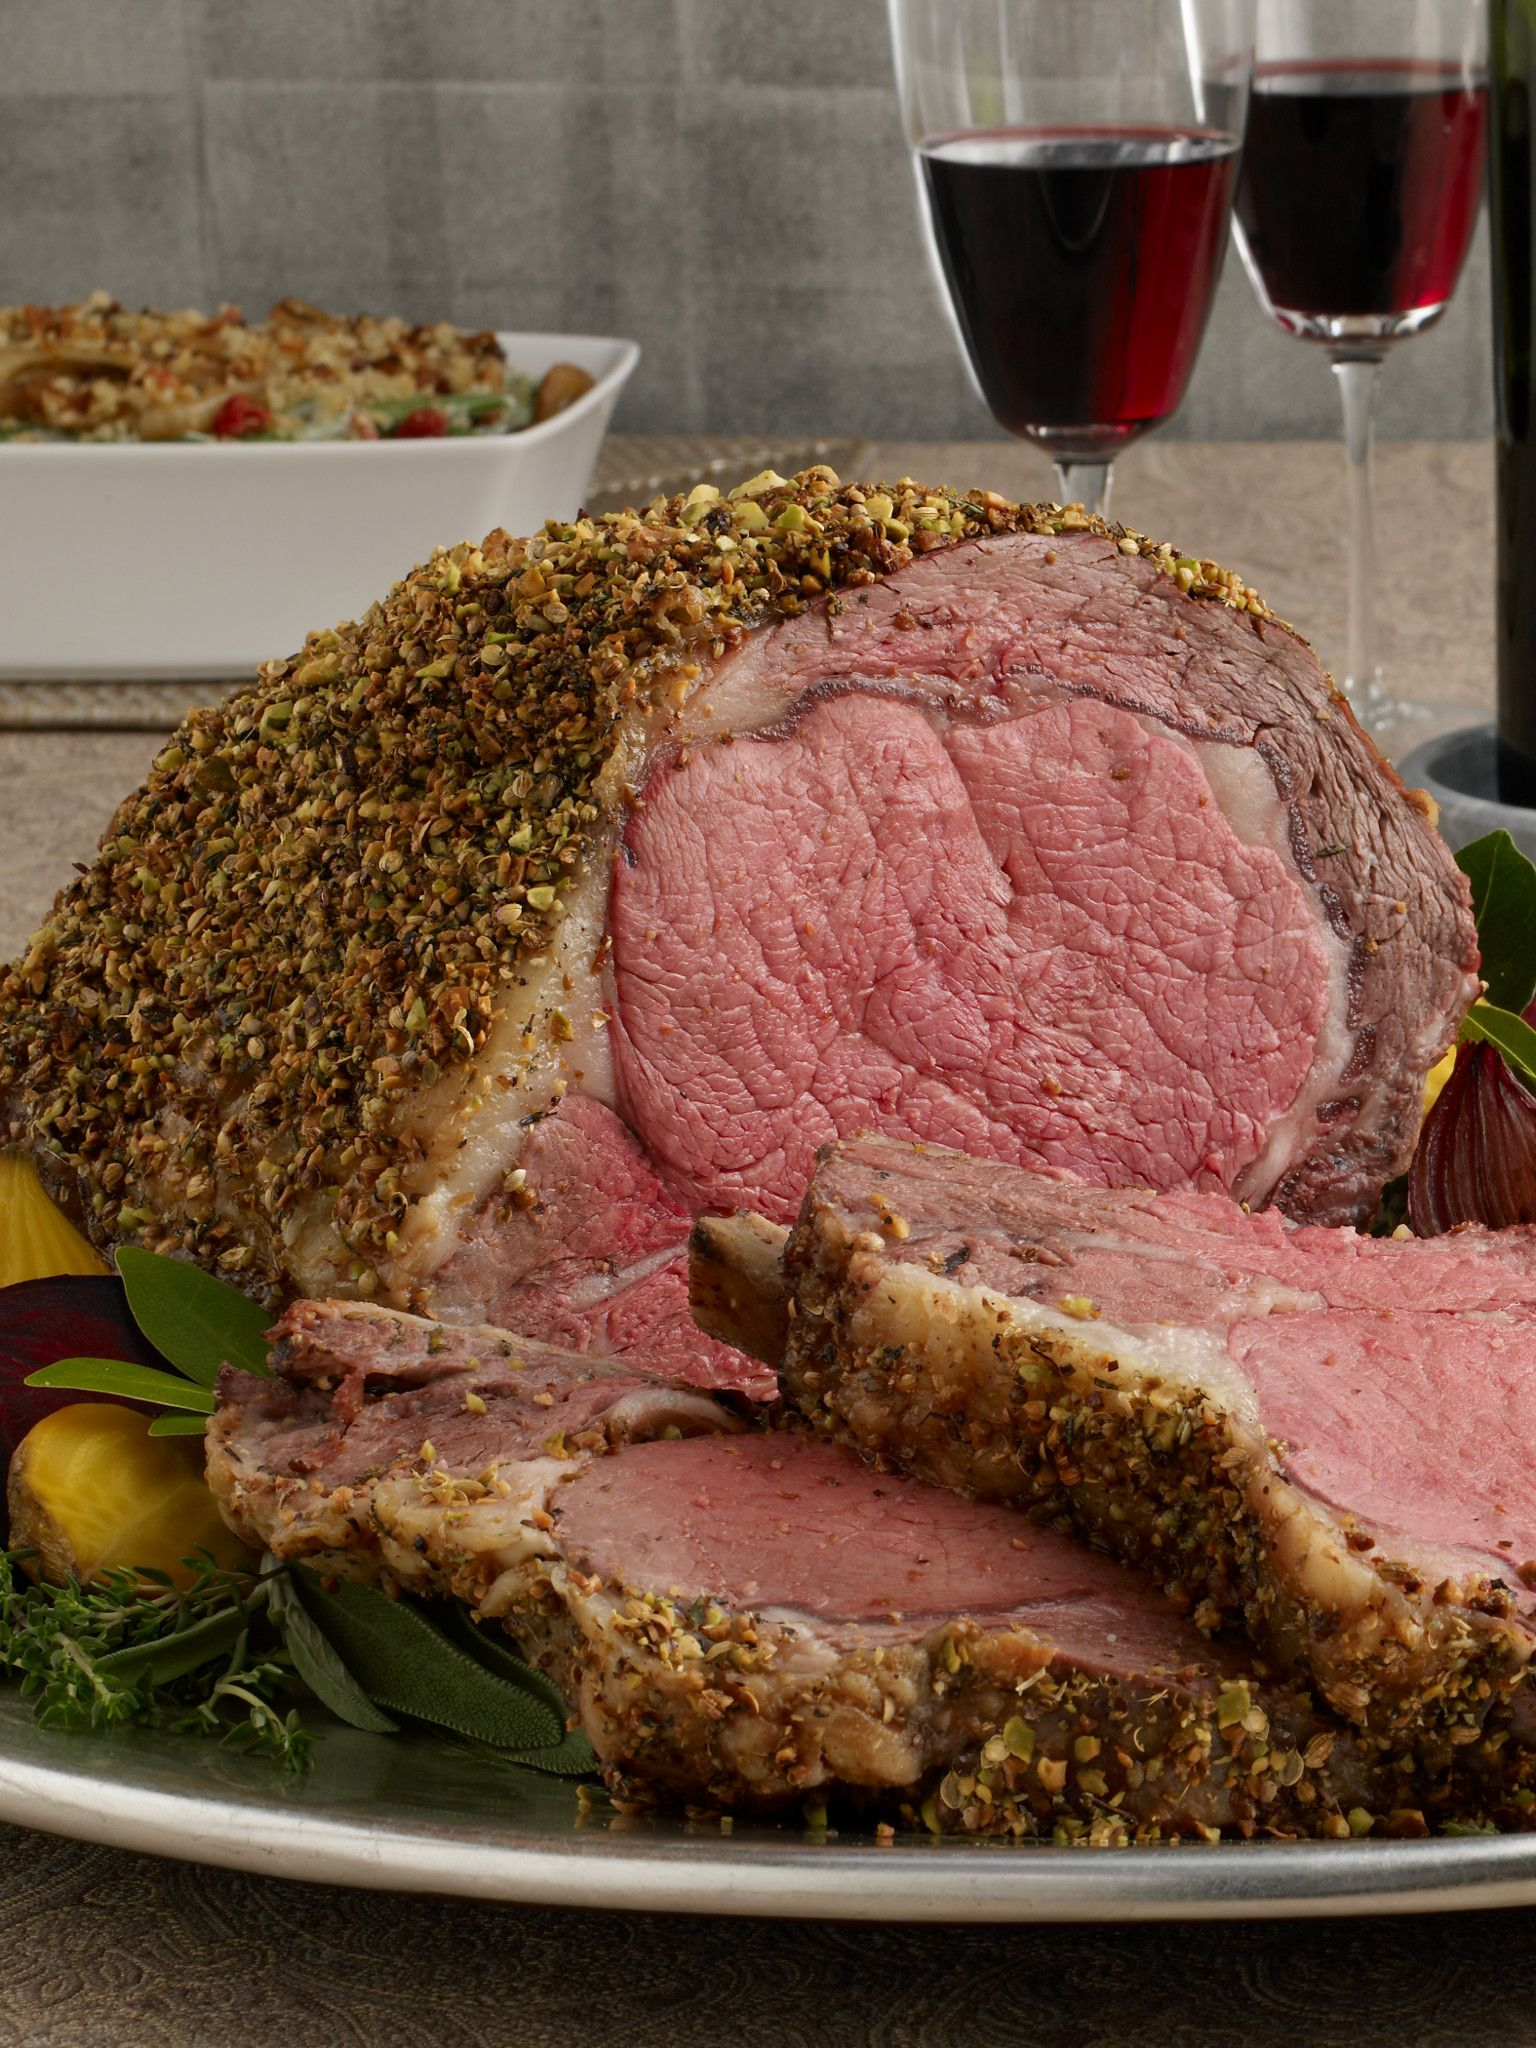 Pistachio-Crusted Beef Ribeye Roast with Holiday Wine Sauce